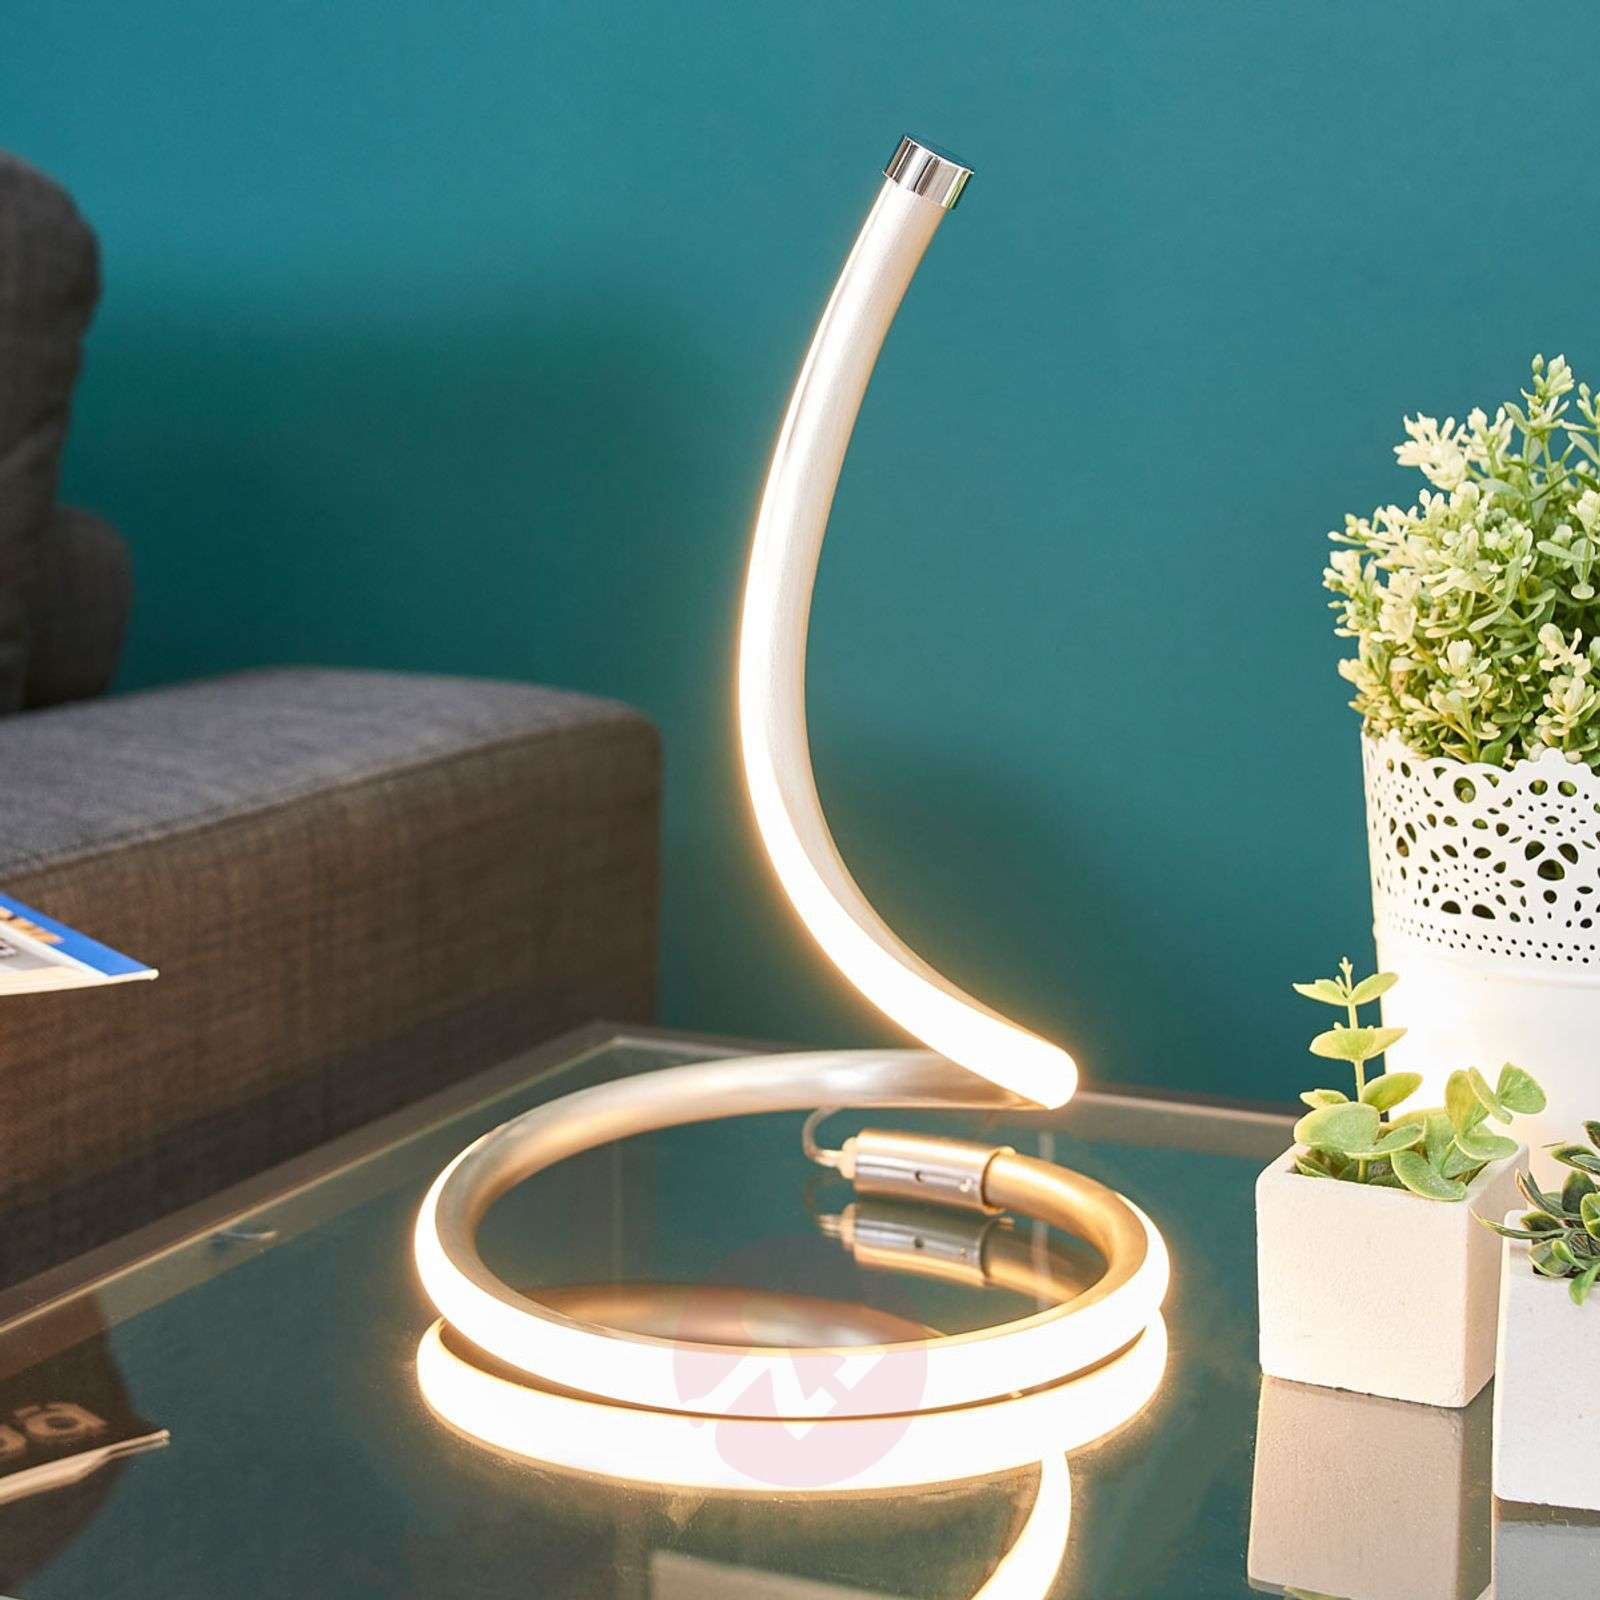 Sena LED table lamp with curved design-9985075-02